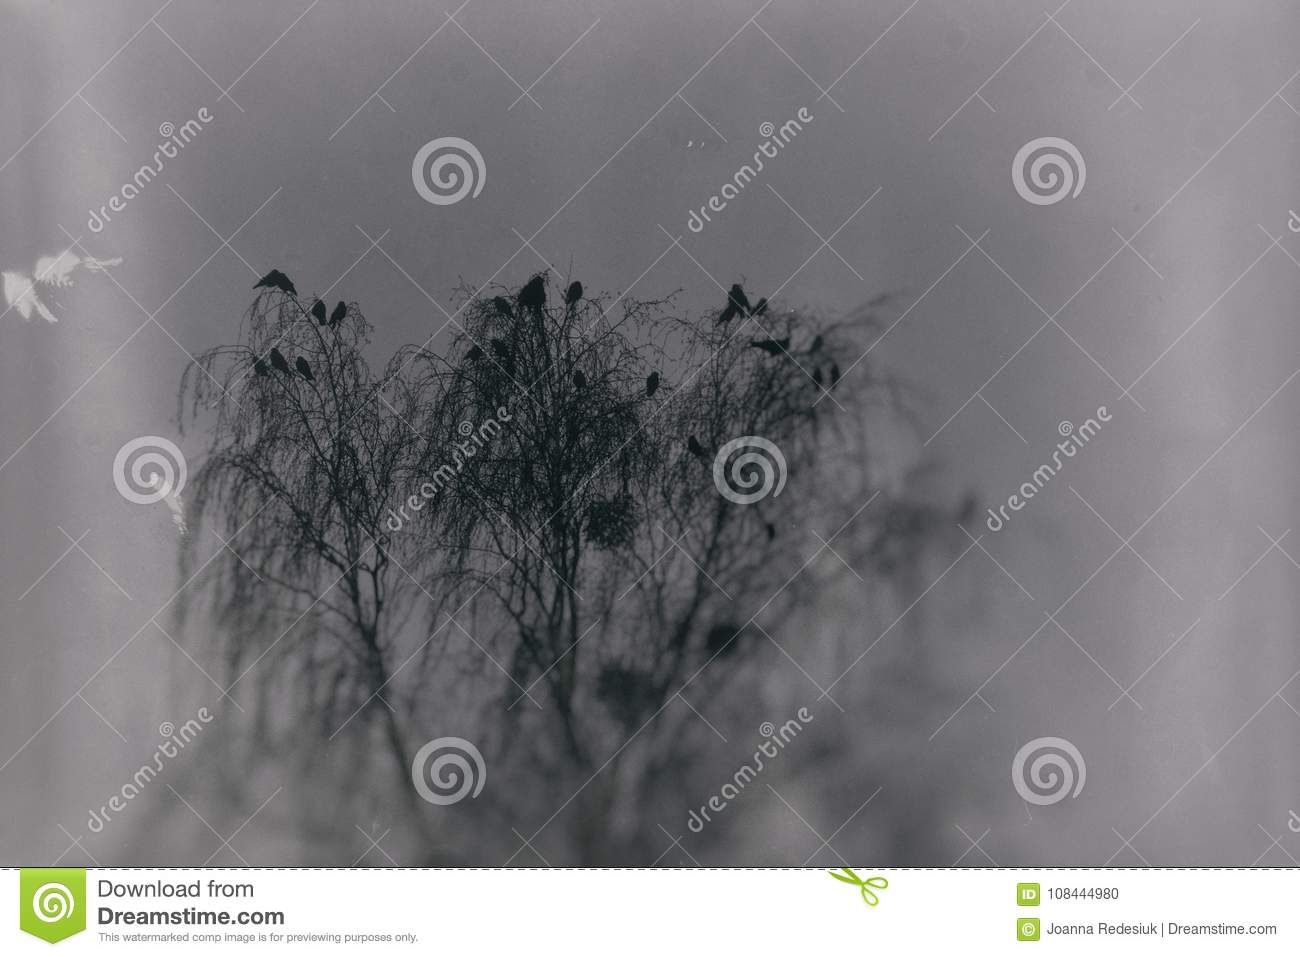 A gothic photograph of black birds sitting on a leafless birch